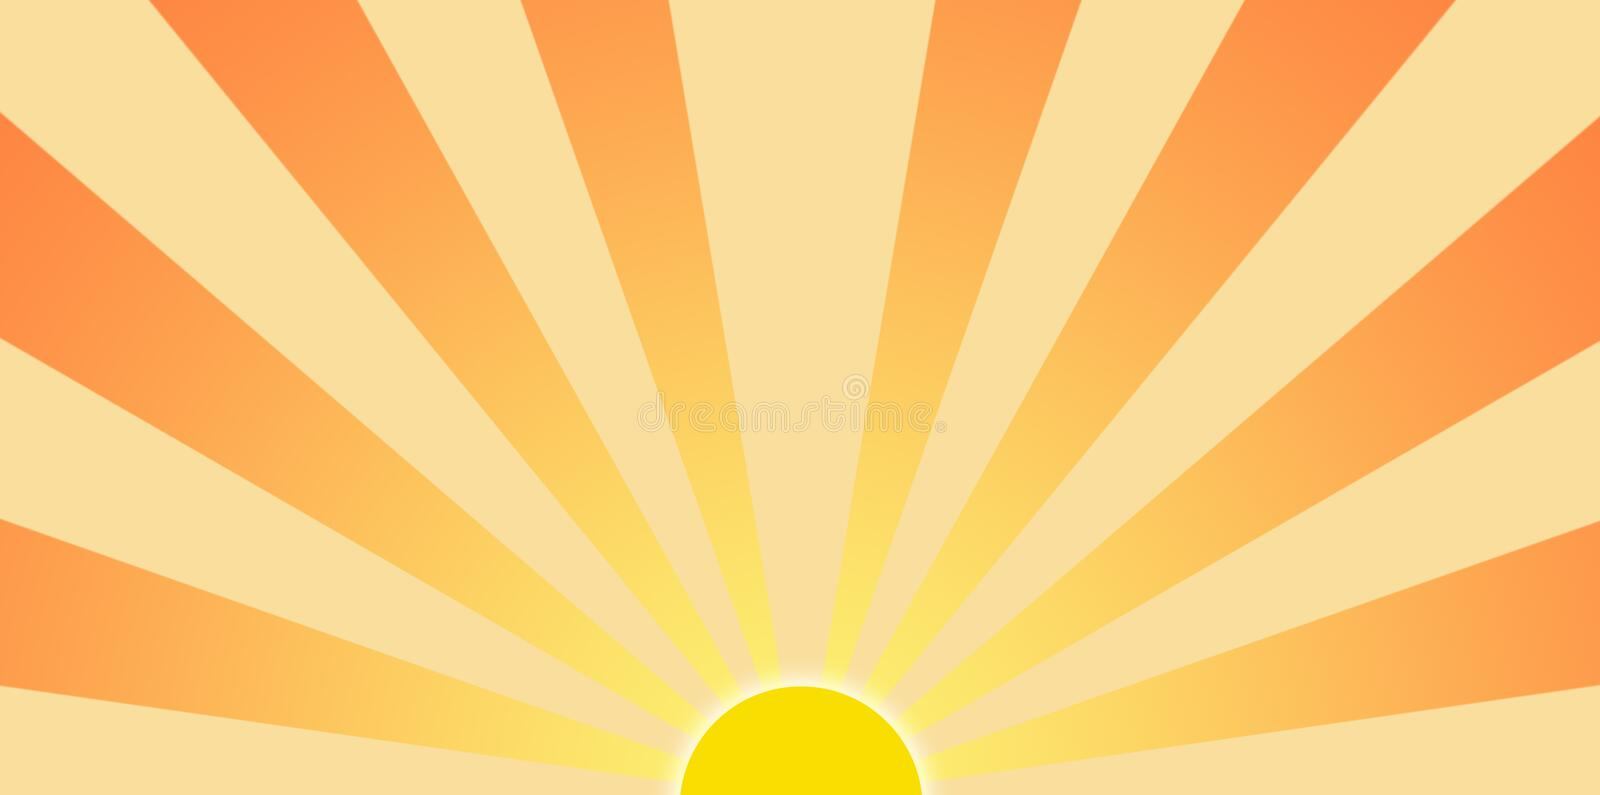 Download Setting Sun Graphic Clip Art Stock Illustration - Image: 4900914